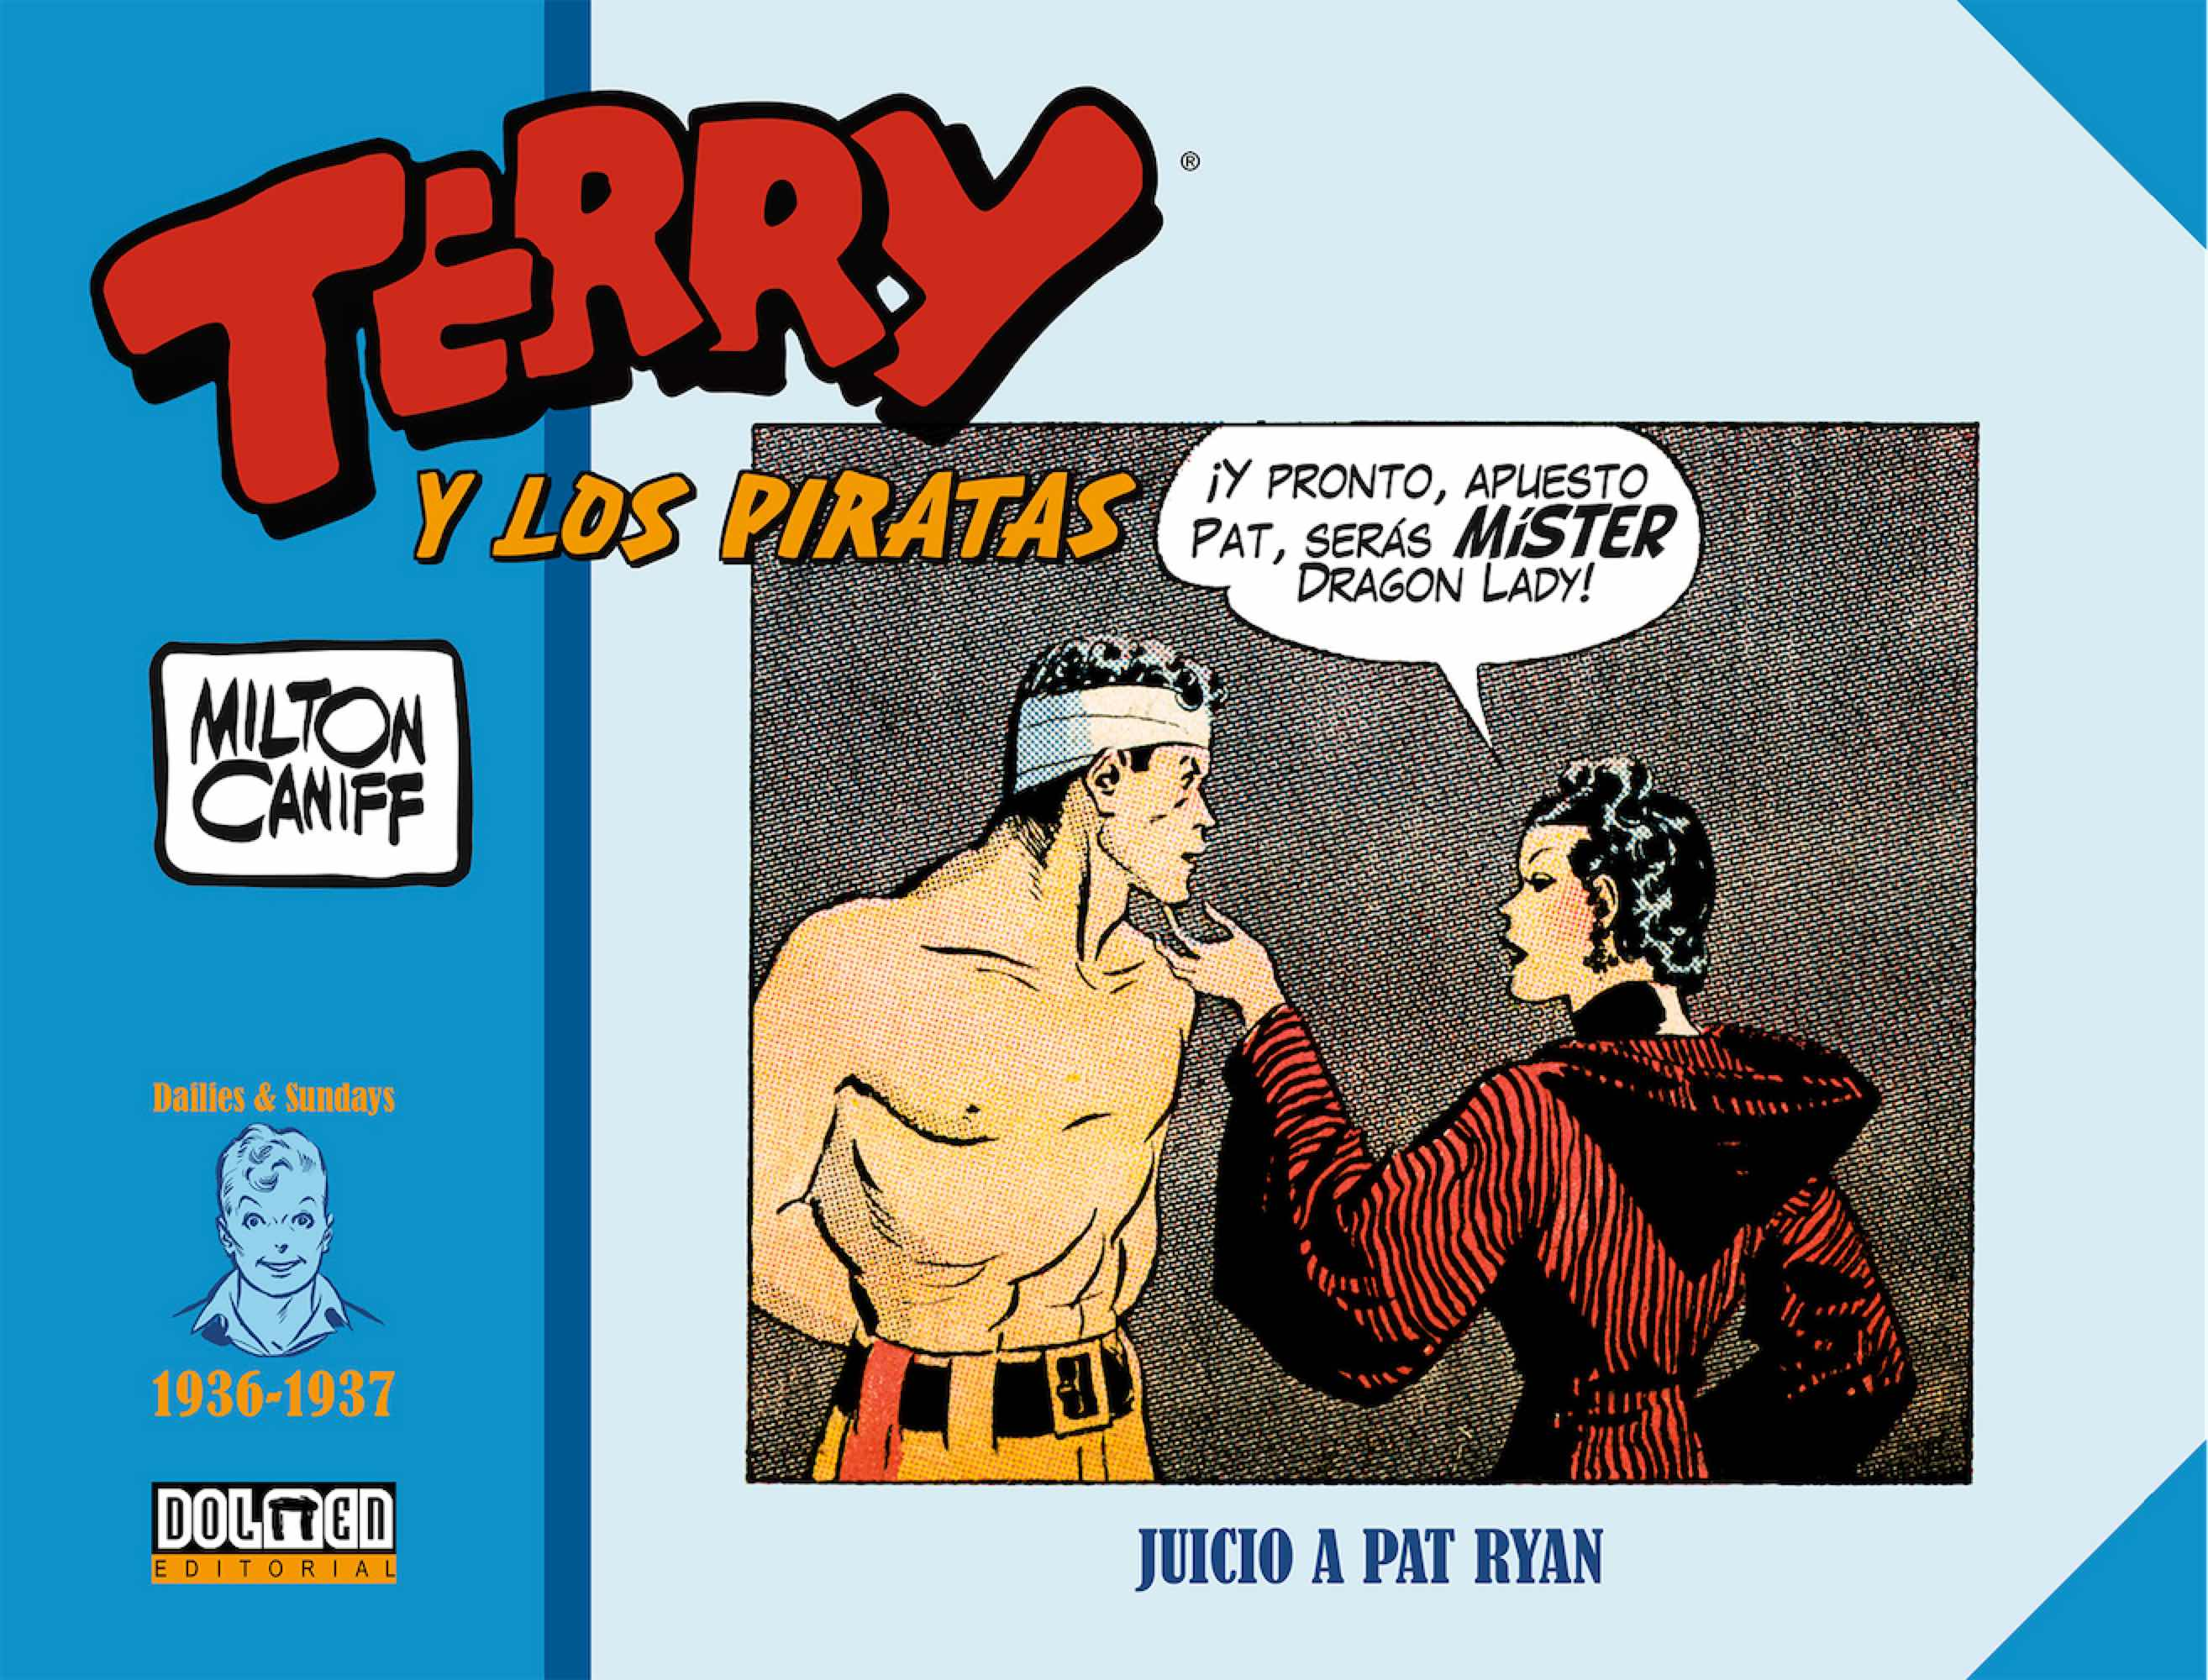 TERRY Y LOS PIRATAS: 1936-1937